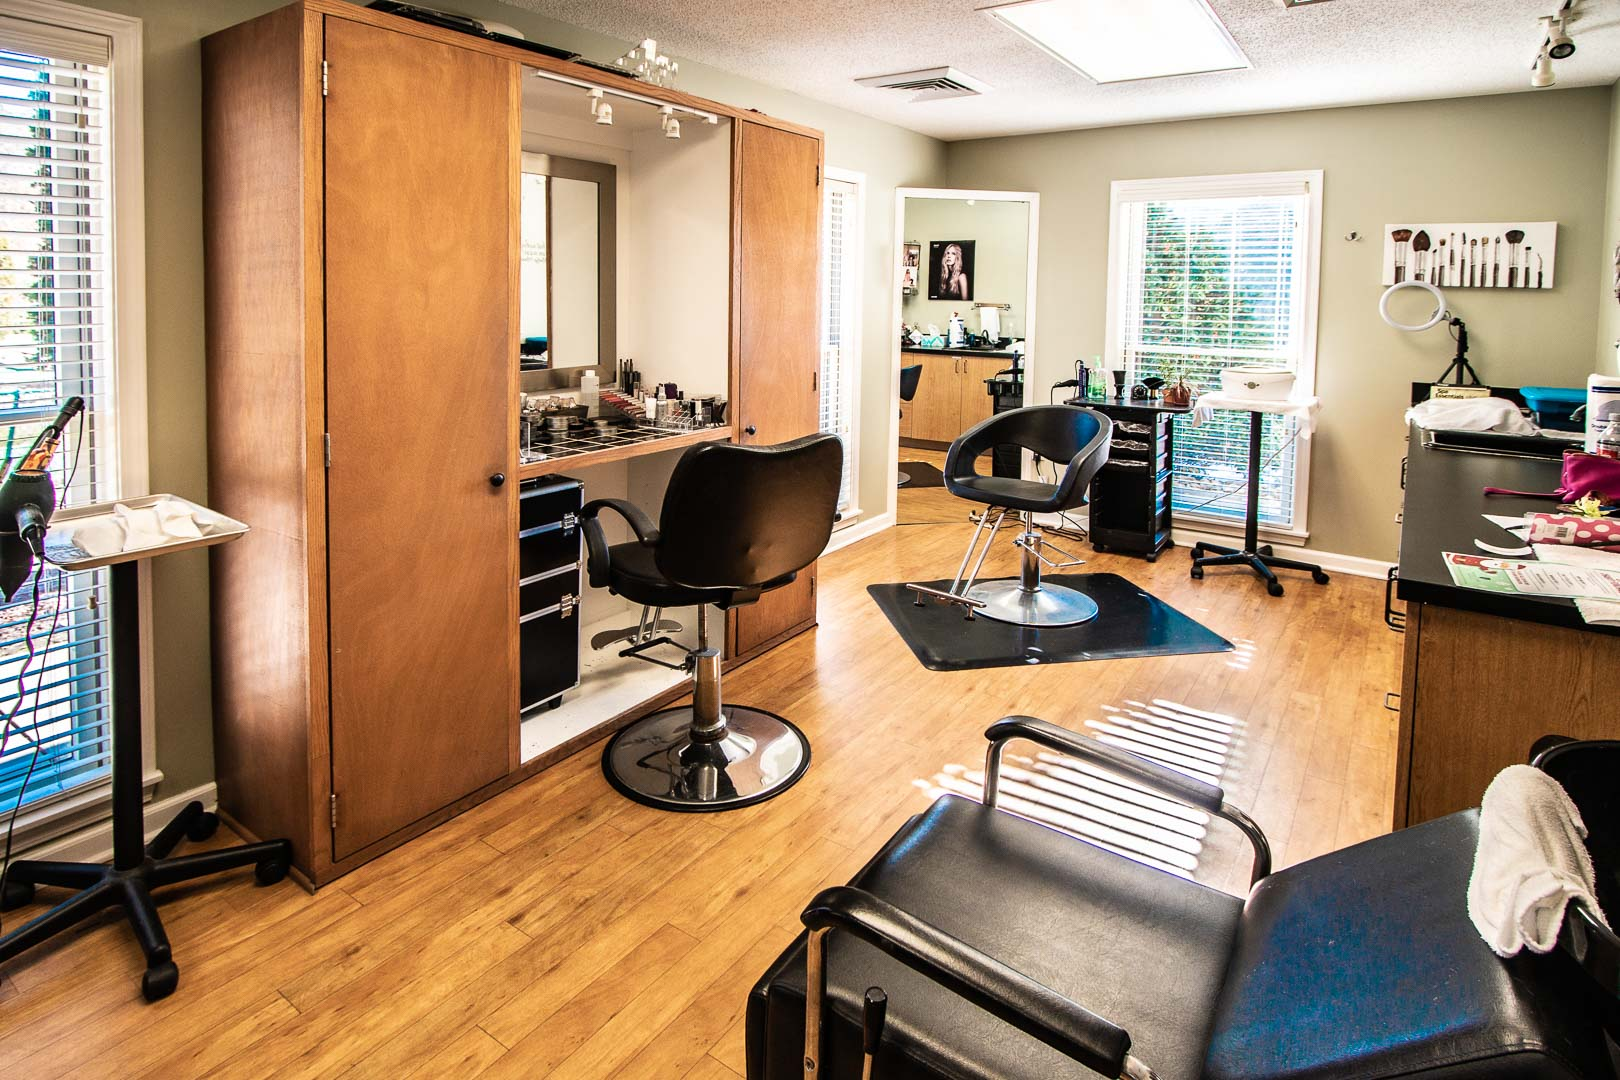 Hair salons available at VRI's Fairways of the Mountains in North Carolina.